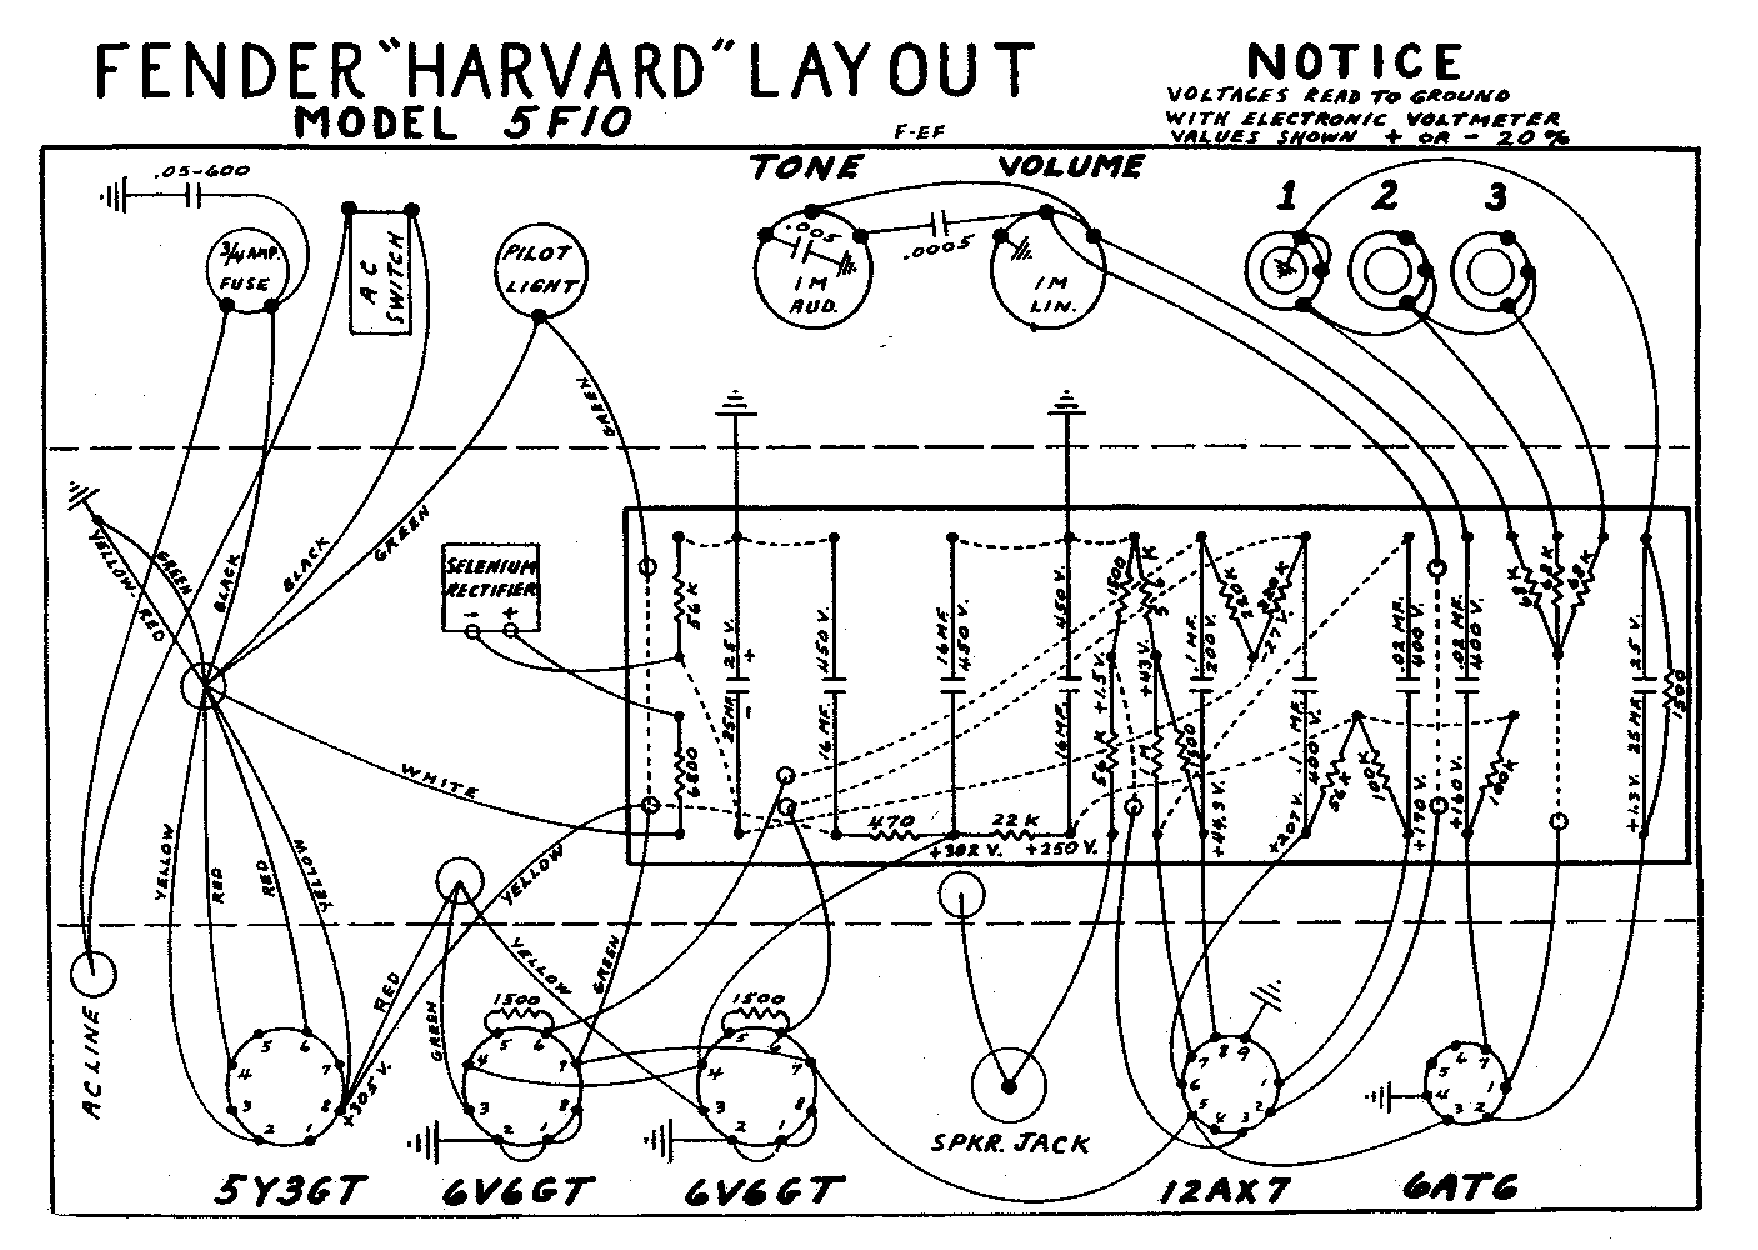 Fender Harvard 5f10 Layout Service Manual Download